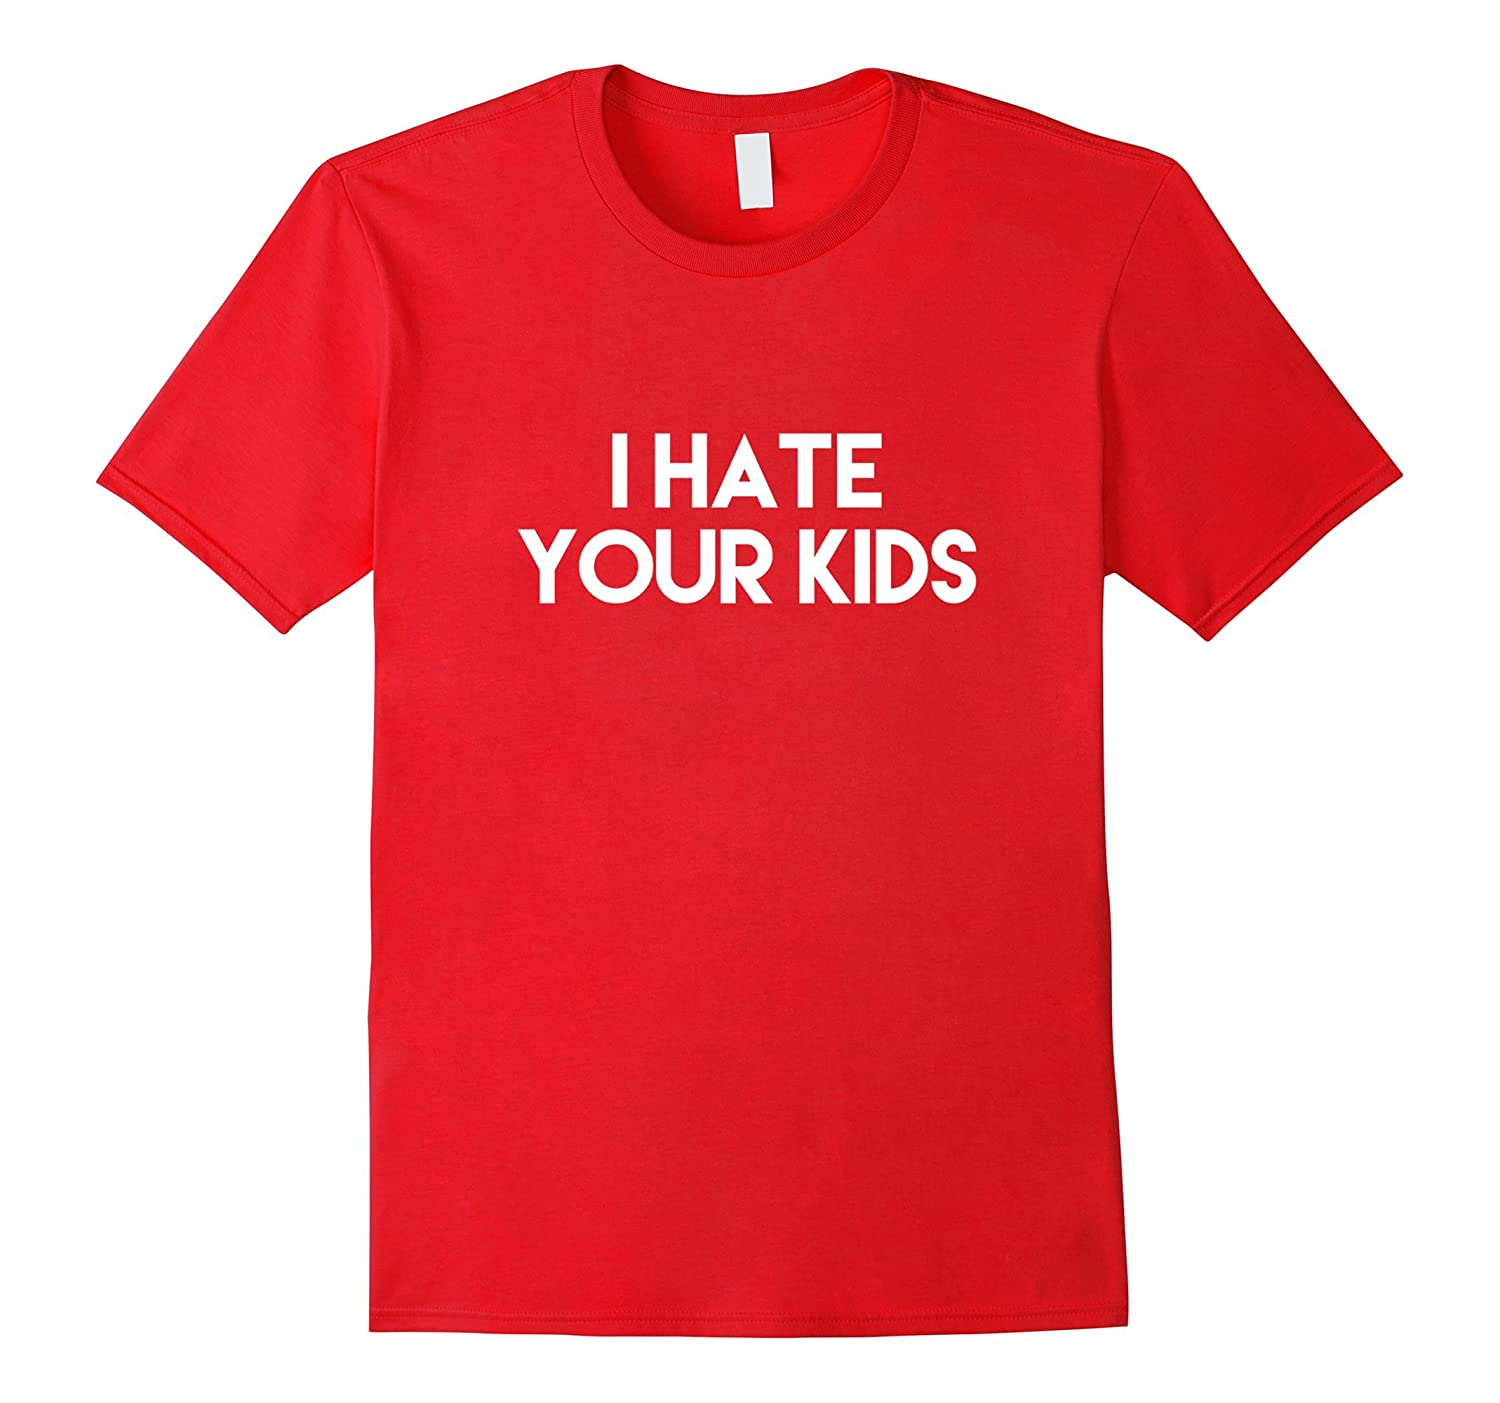 I Hate Your Kids Funny Sarcastic Motivational Parody Shirt-Vaci